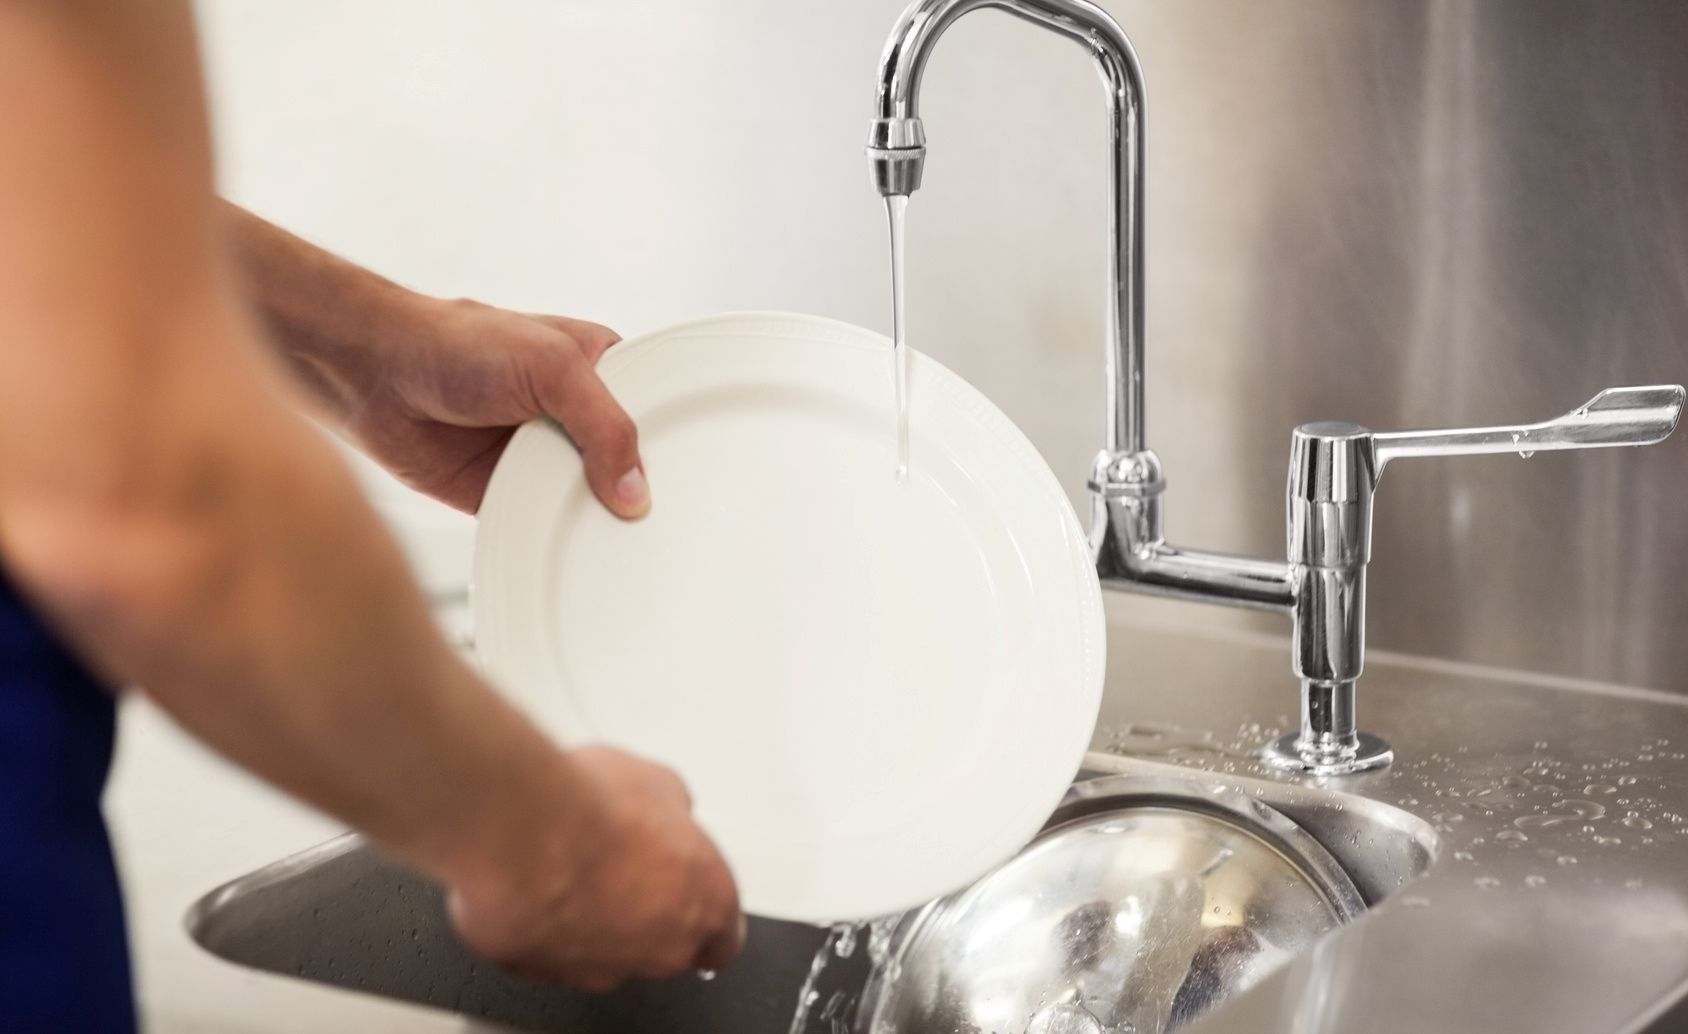 Filter The 3 Compartment Sink In Your Hotel S Commercial Kitchen Commercial Kitchen Sink Cleaning